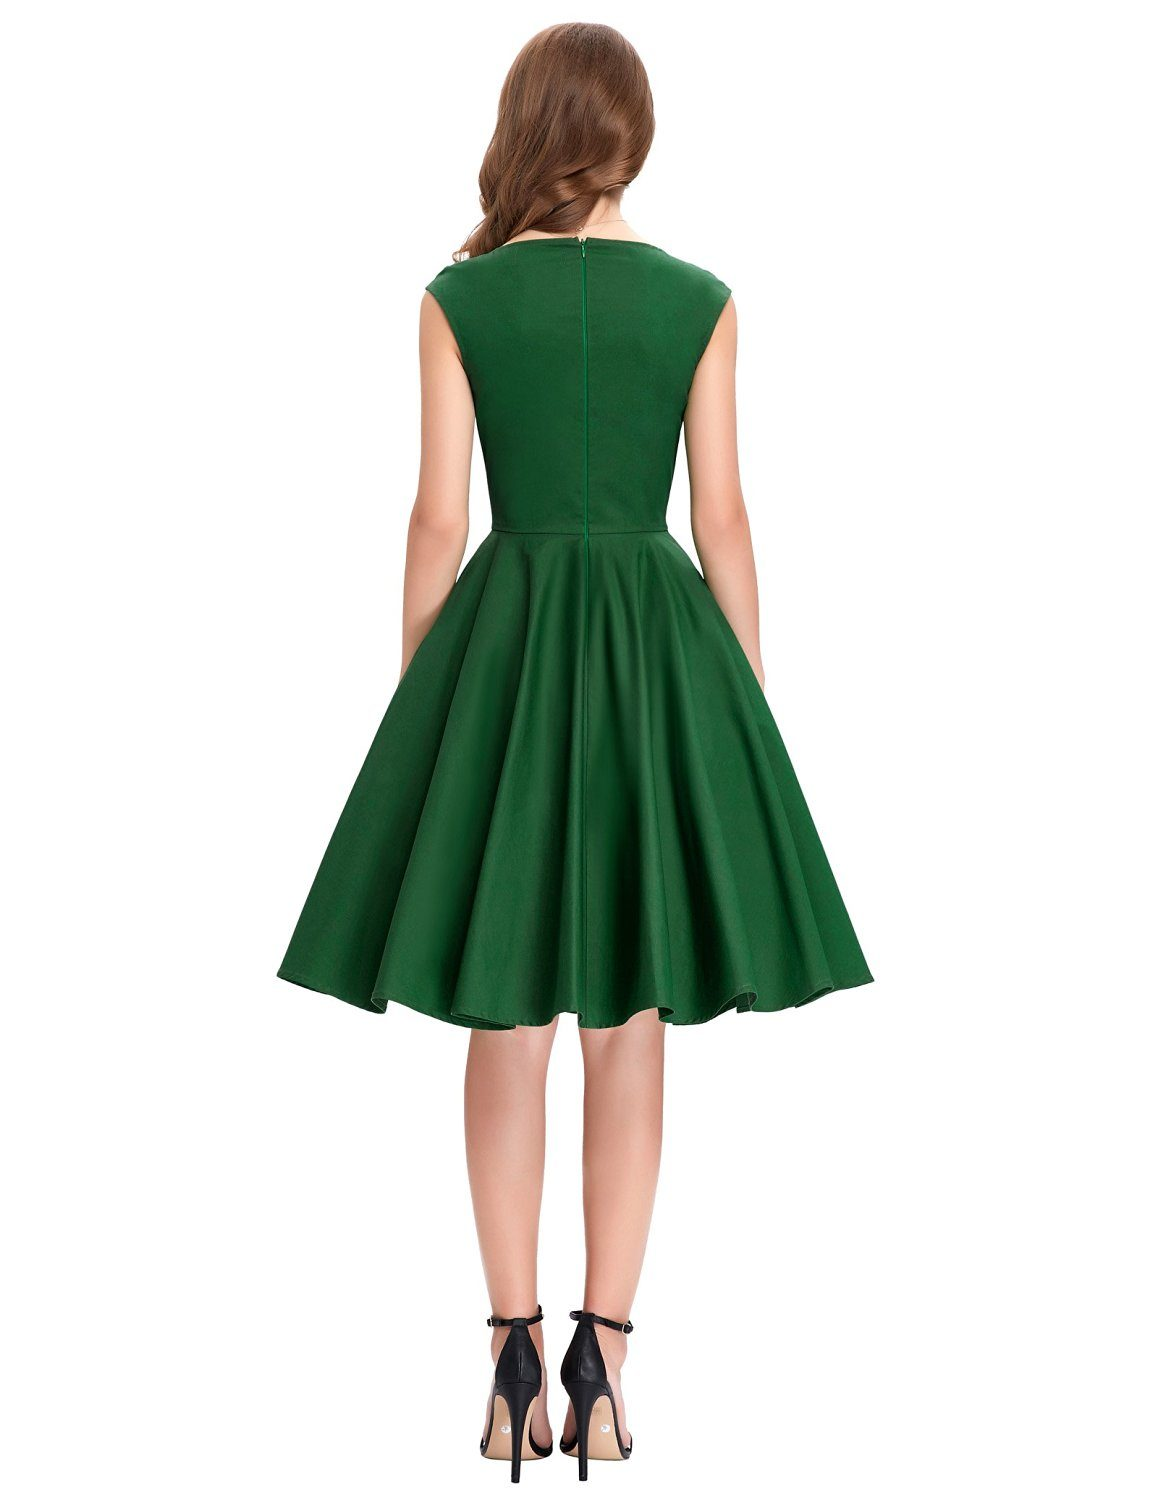 tiffany-green-sweetheart-swing-dress-back